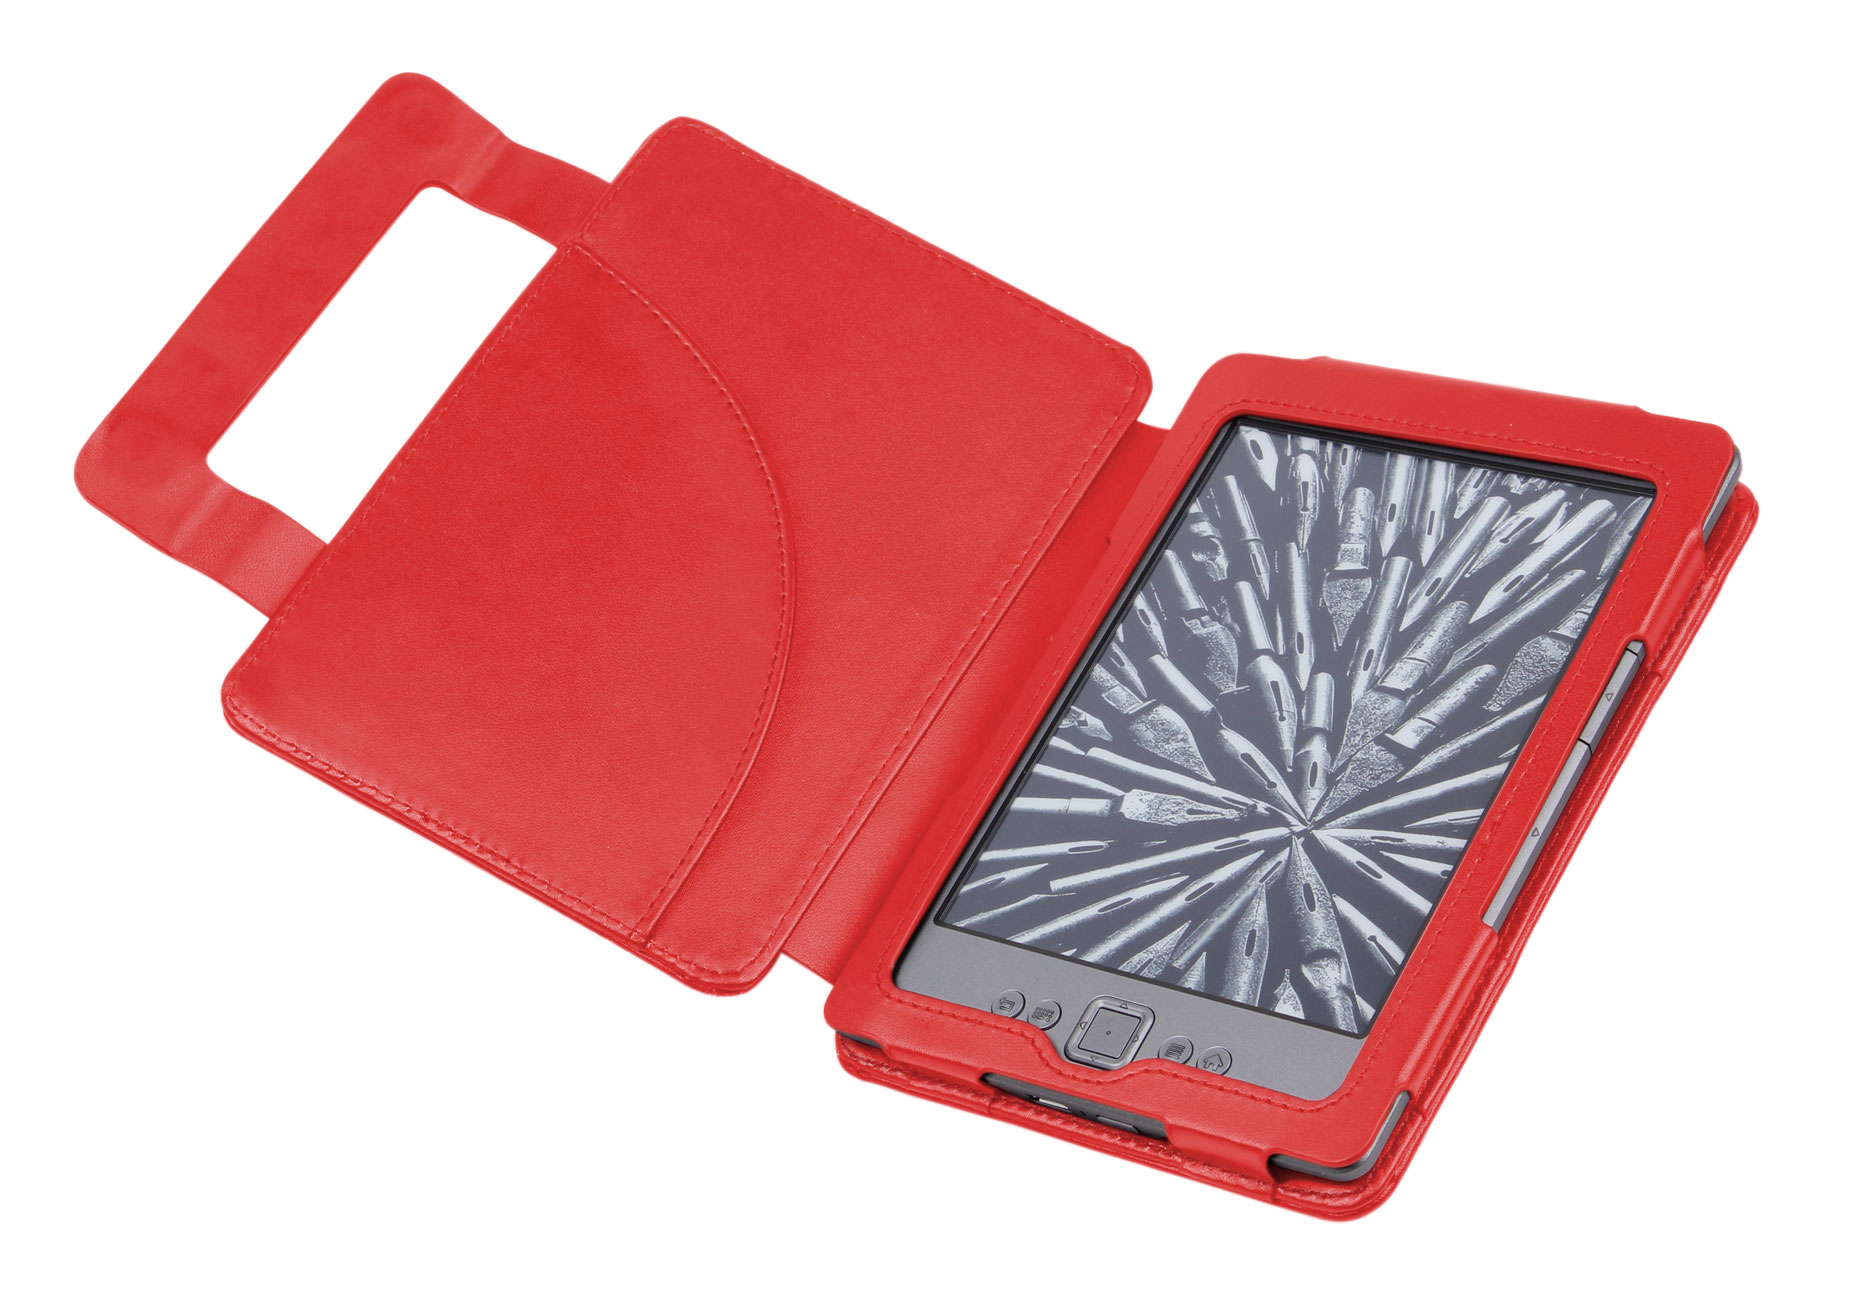 New Red Genuine Leather Amazon Kindle 4 eReader Book Cover Jacket Case Pouch Enlarged Preview